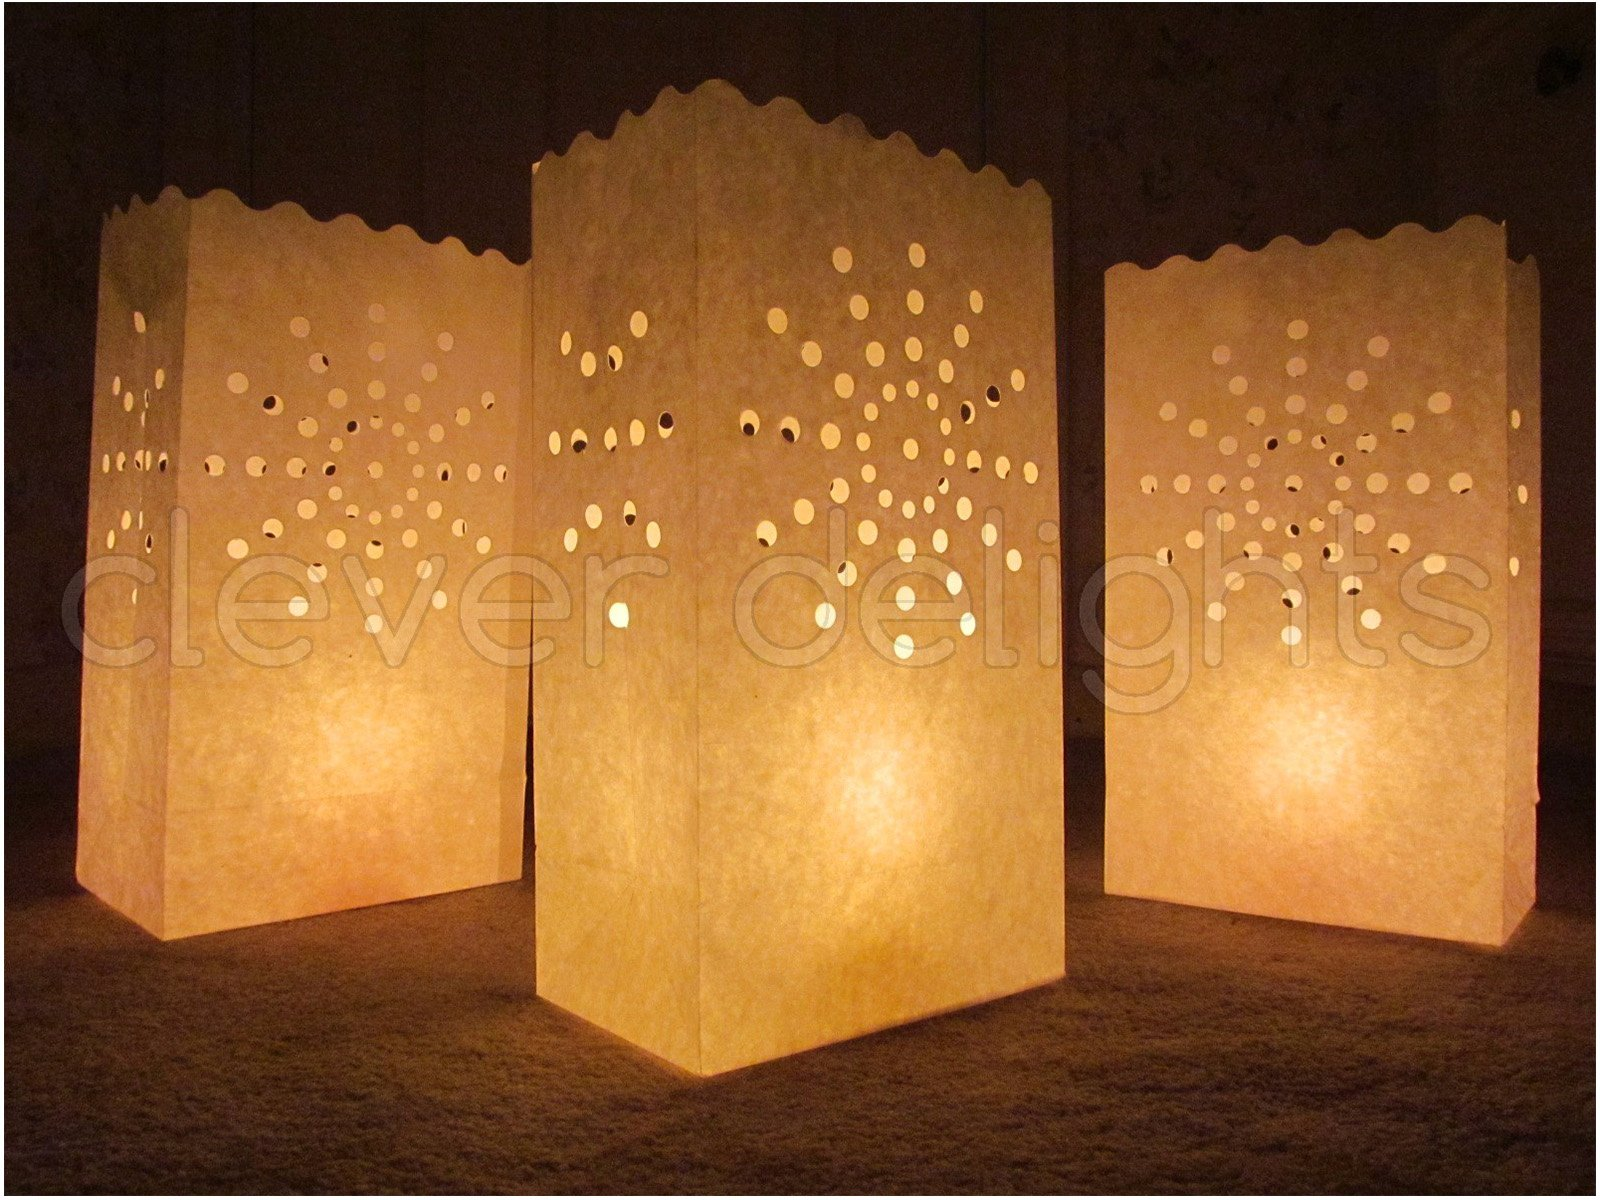 CleverDelights White Luminary Bags - 100 Count - Sunburst Design - Wedding, Reception, Party and Event Decor - Flame Resistant Paper - Luminaria